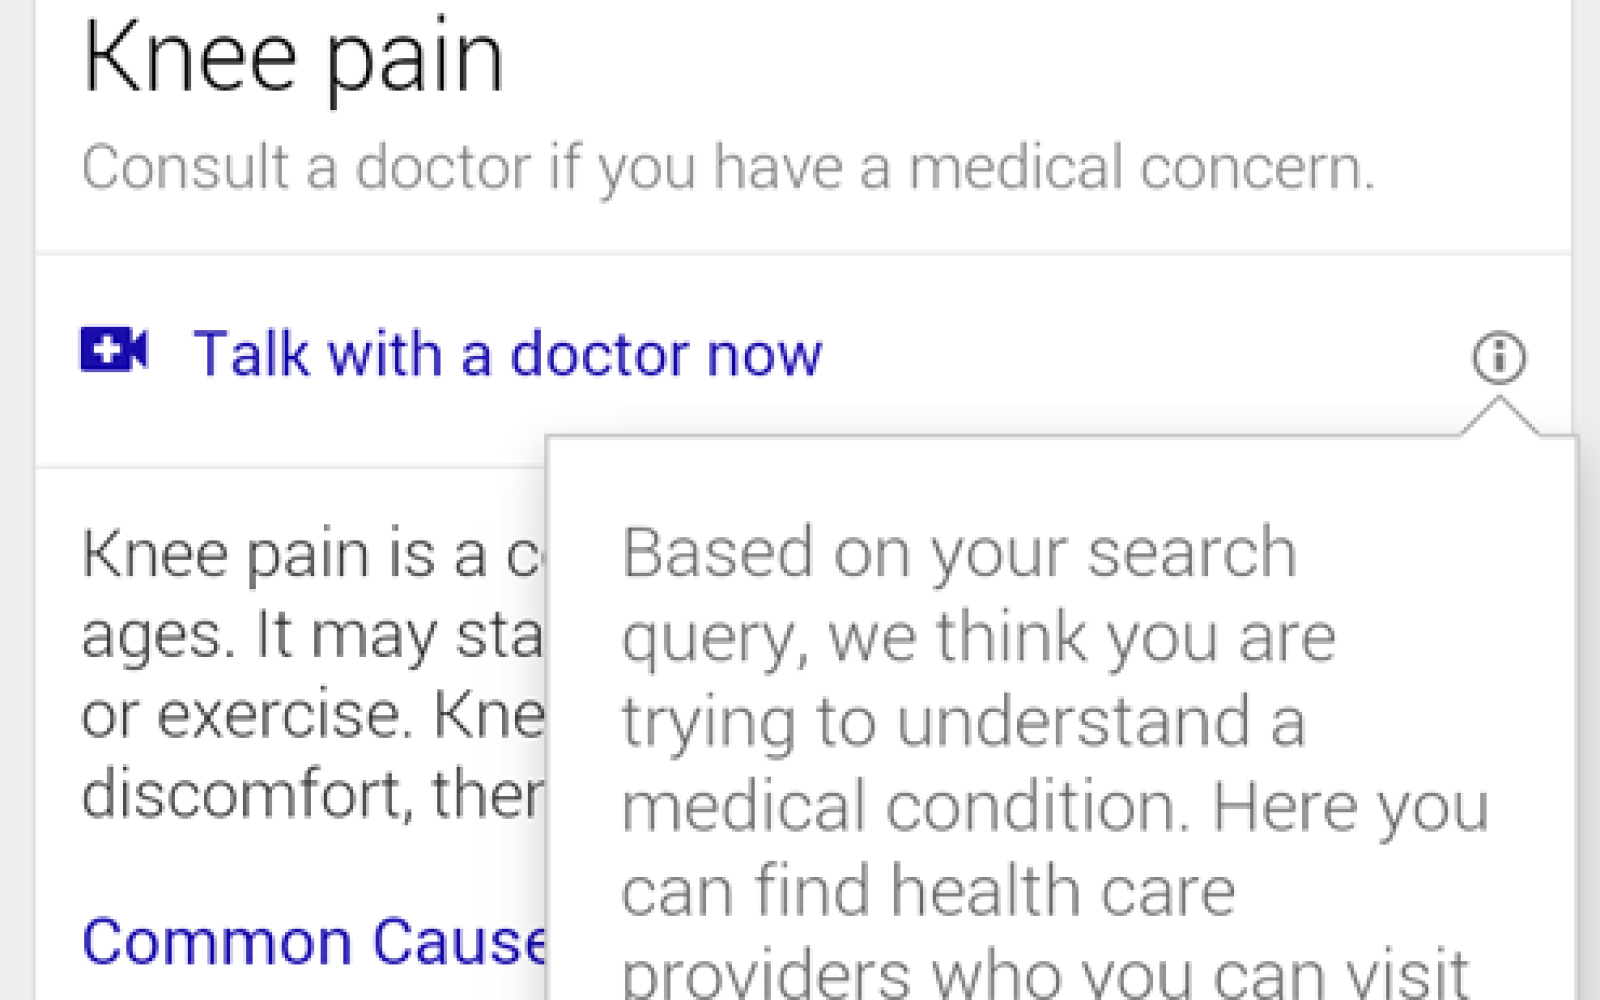 Google trialling free video chats with doctors when you search for symptoms